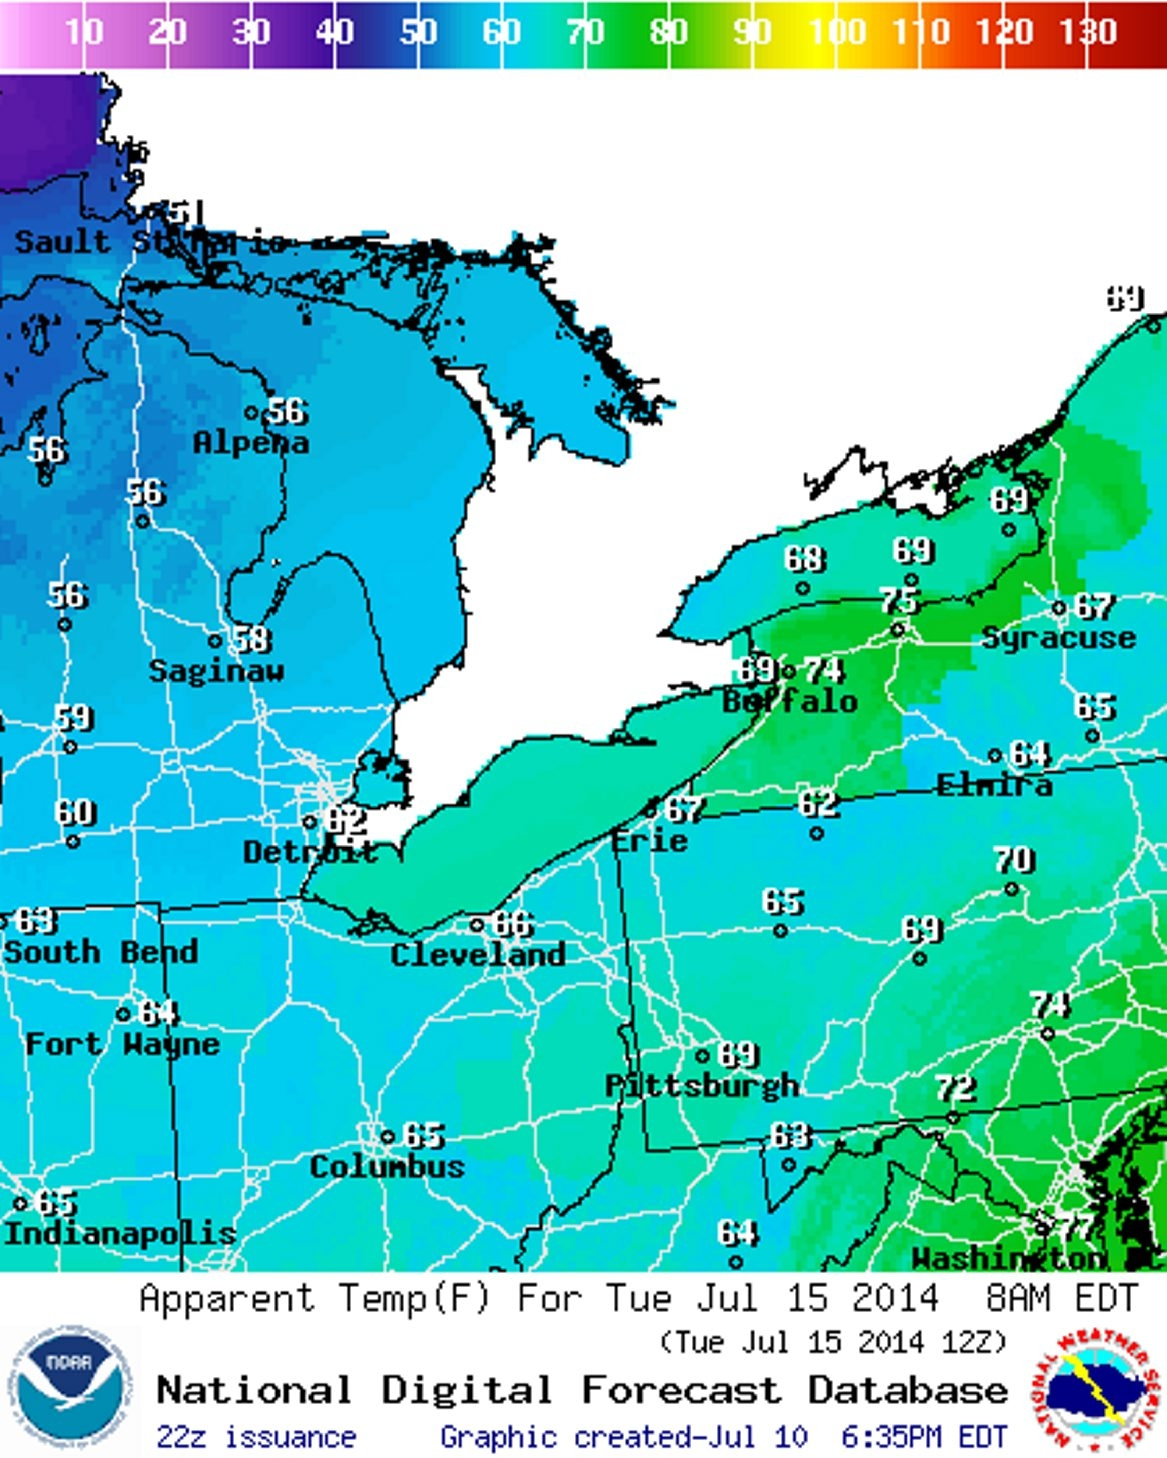 A forecast chart from NOAA shows a colder-than-usual forecast for Tuesday morning.